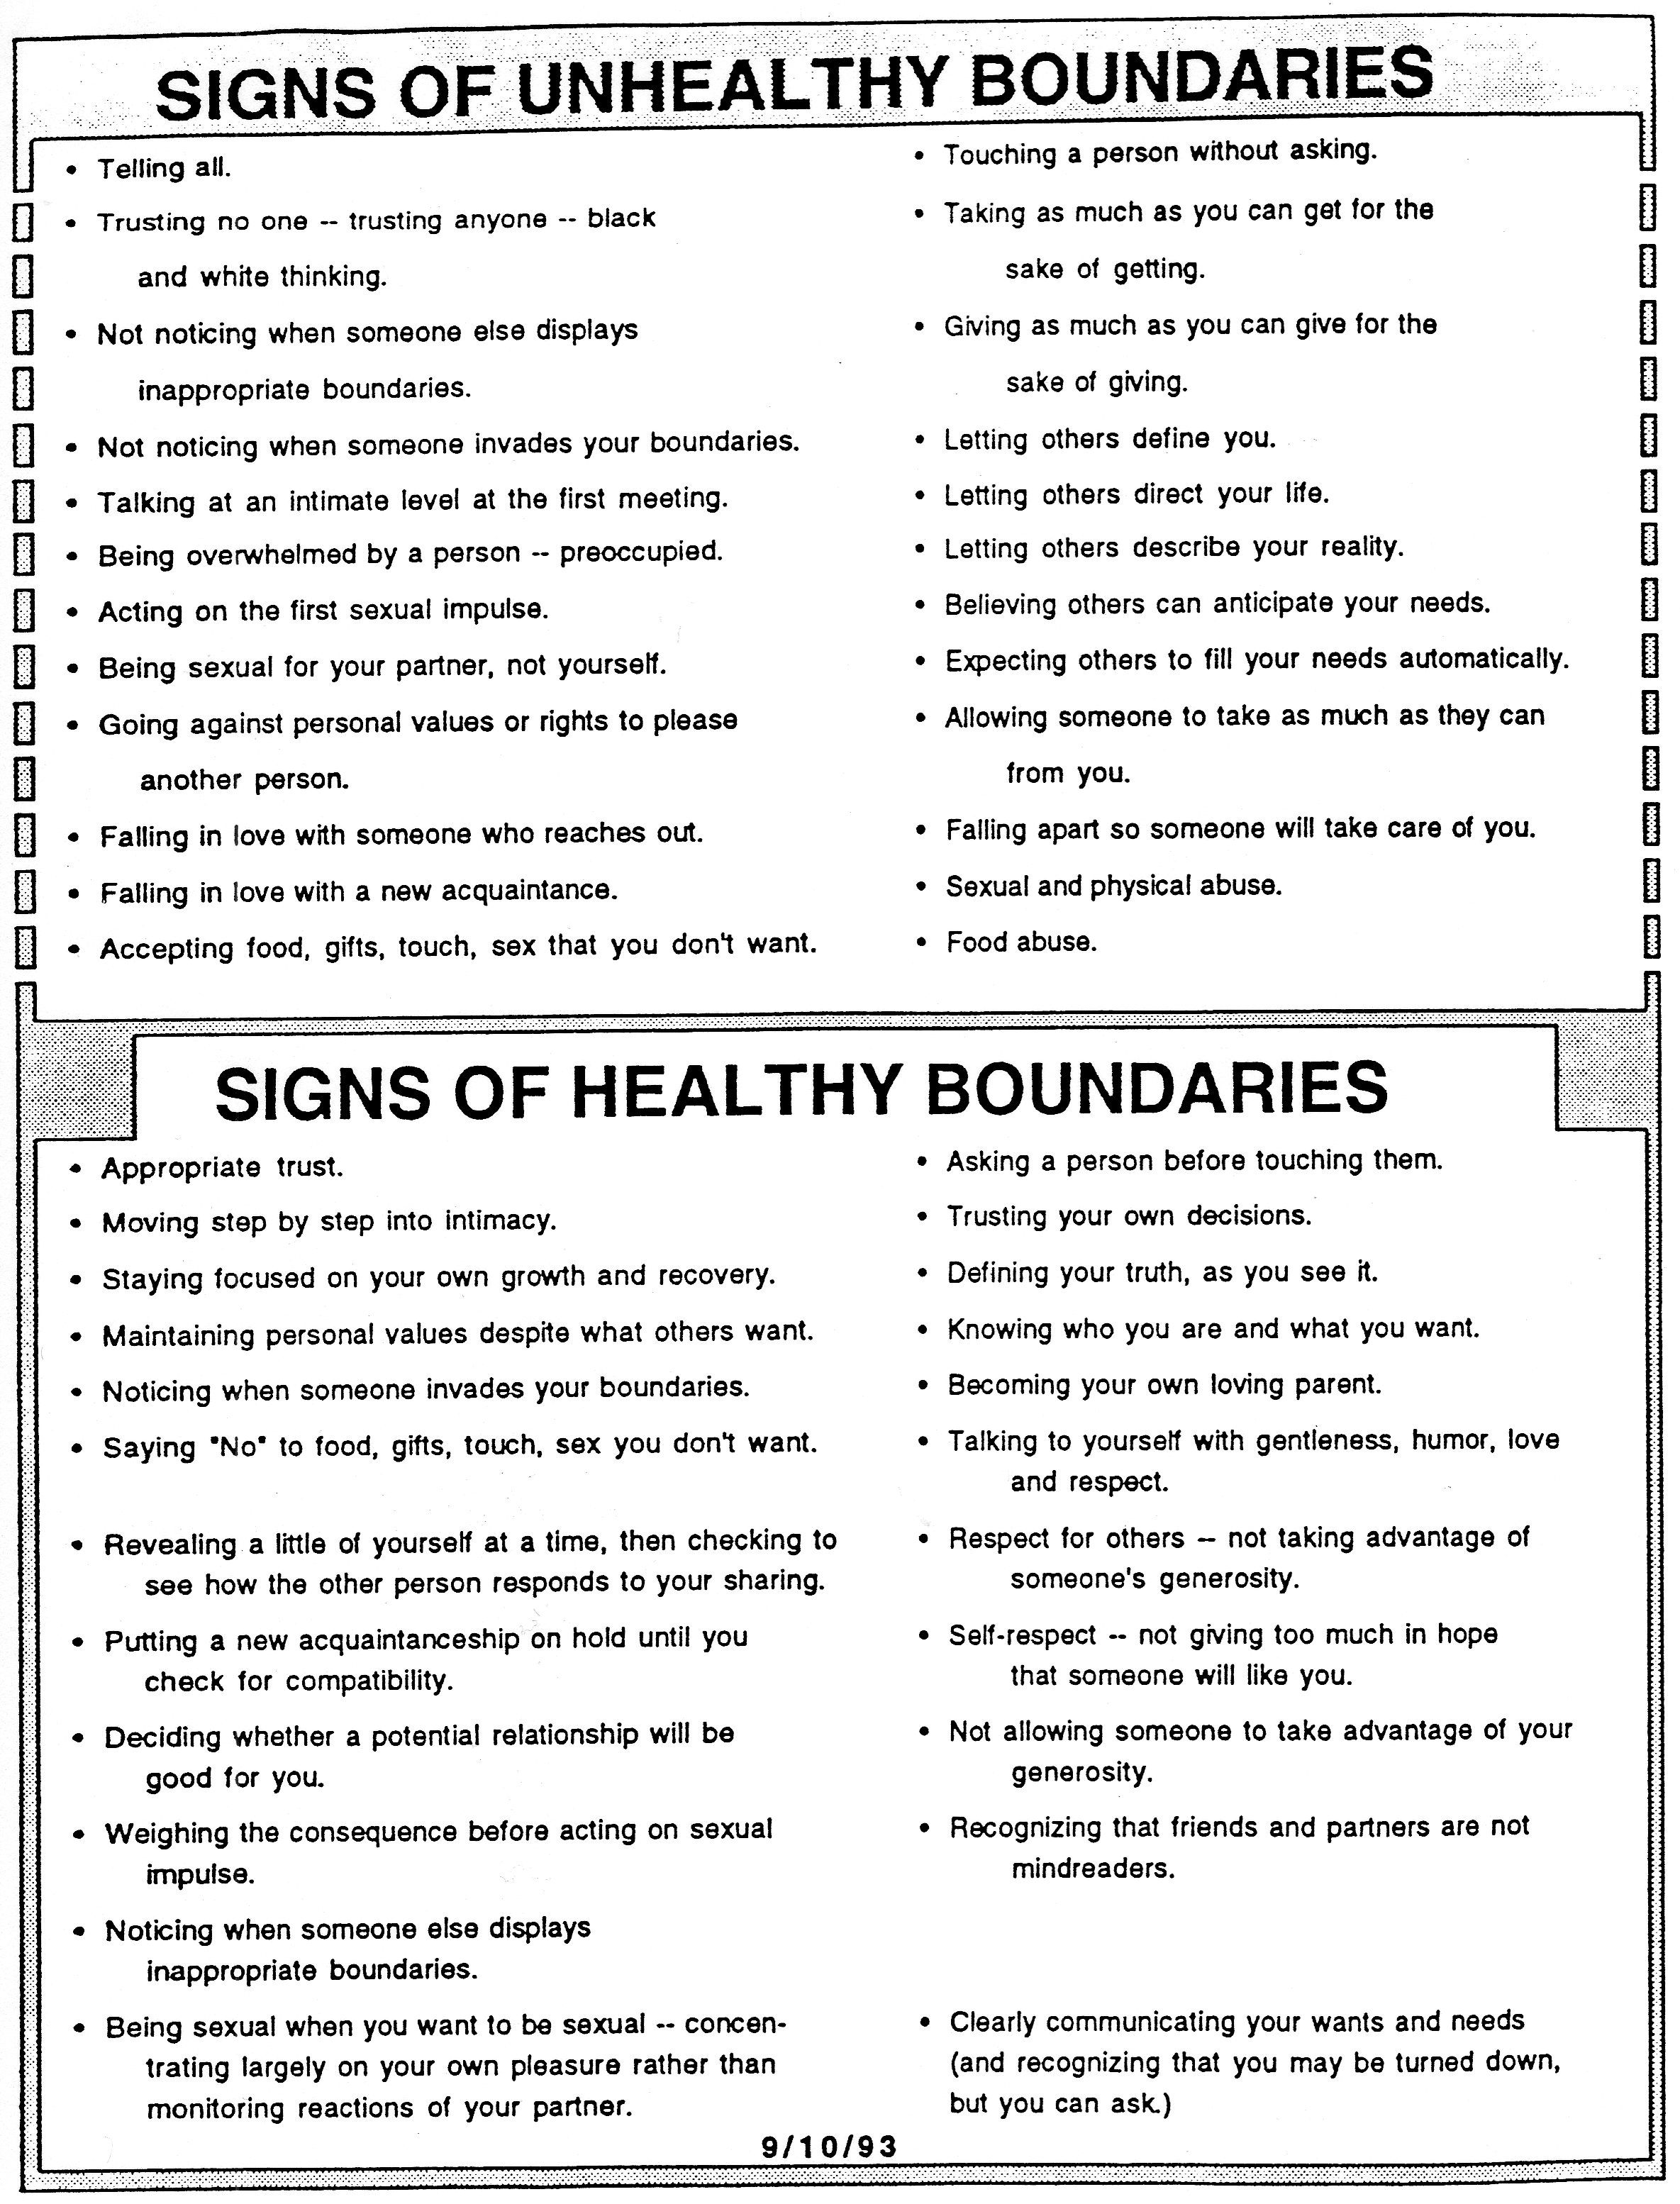 Healthy Boundaries Vs Unhealthy Boundaries